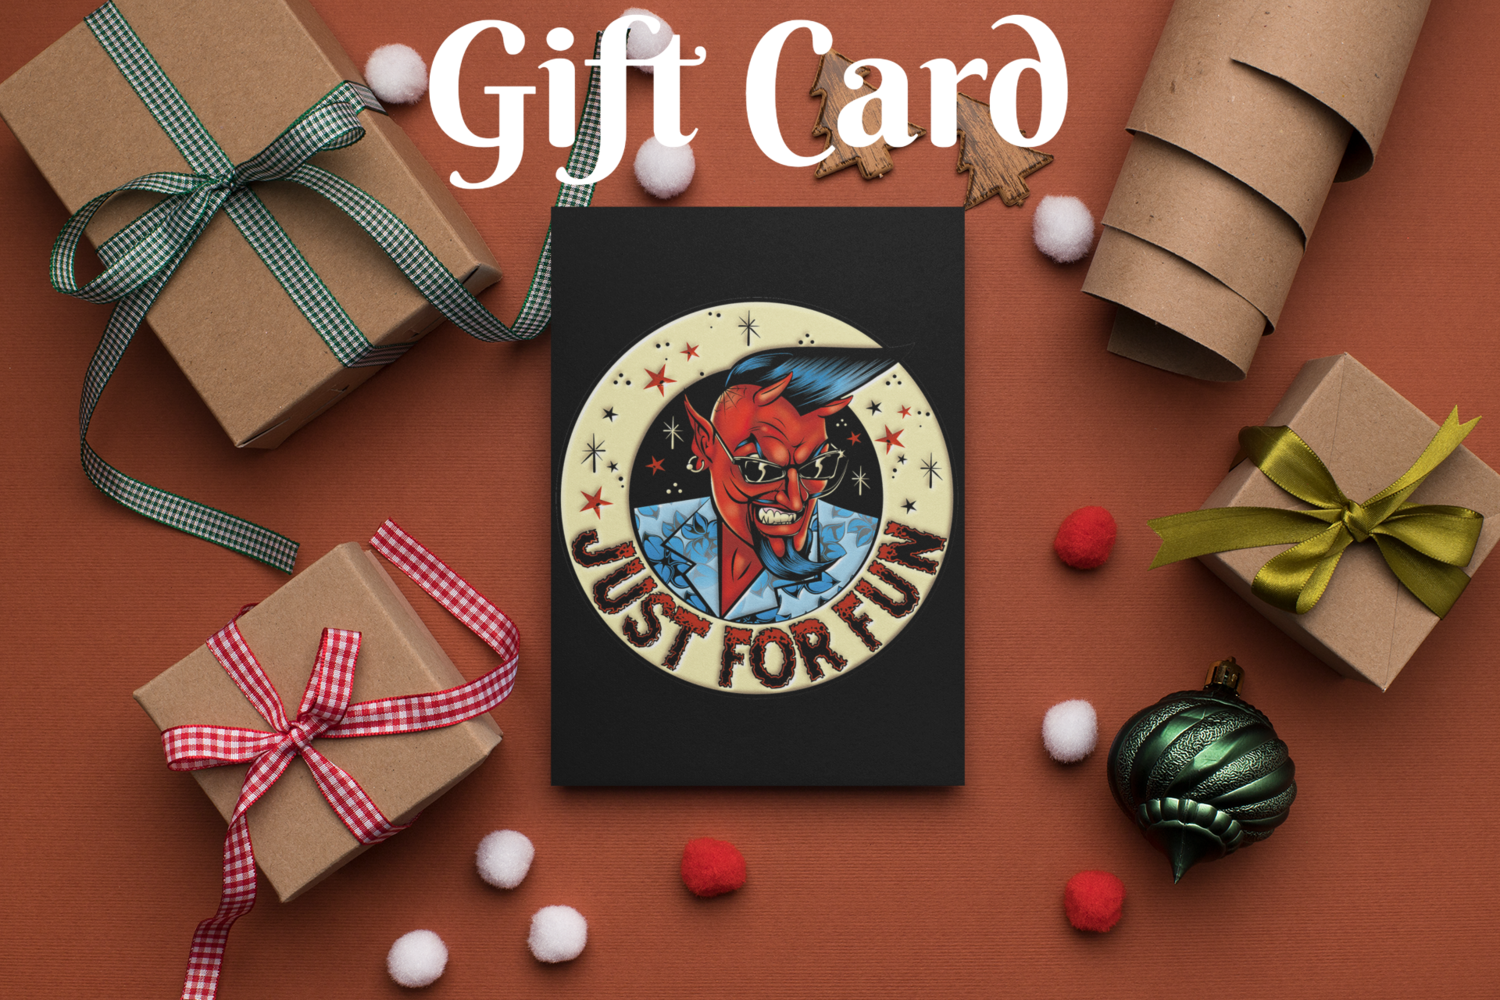 Just for fun store Gift card